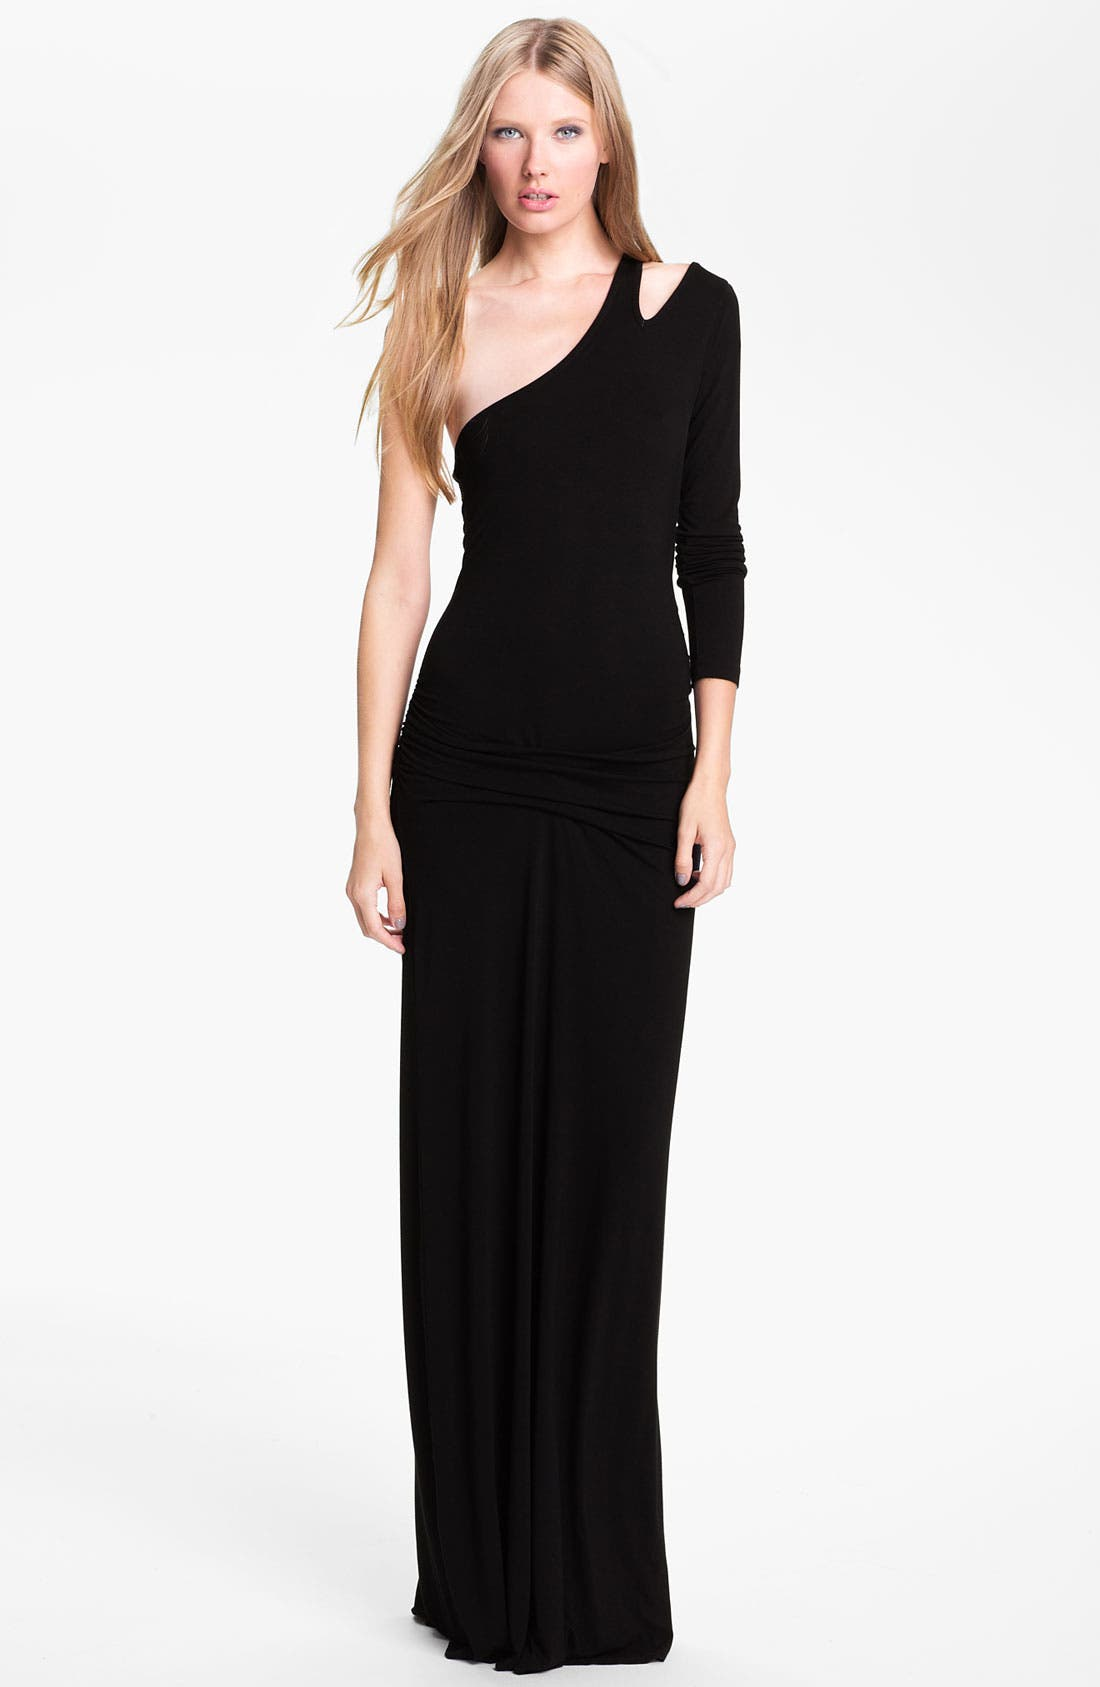 Main Image - Young, Fabulous & Broke 'Vinny' One Shoulder Maxi Dress